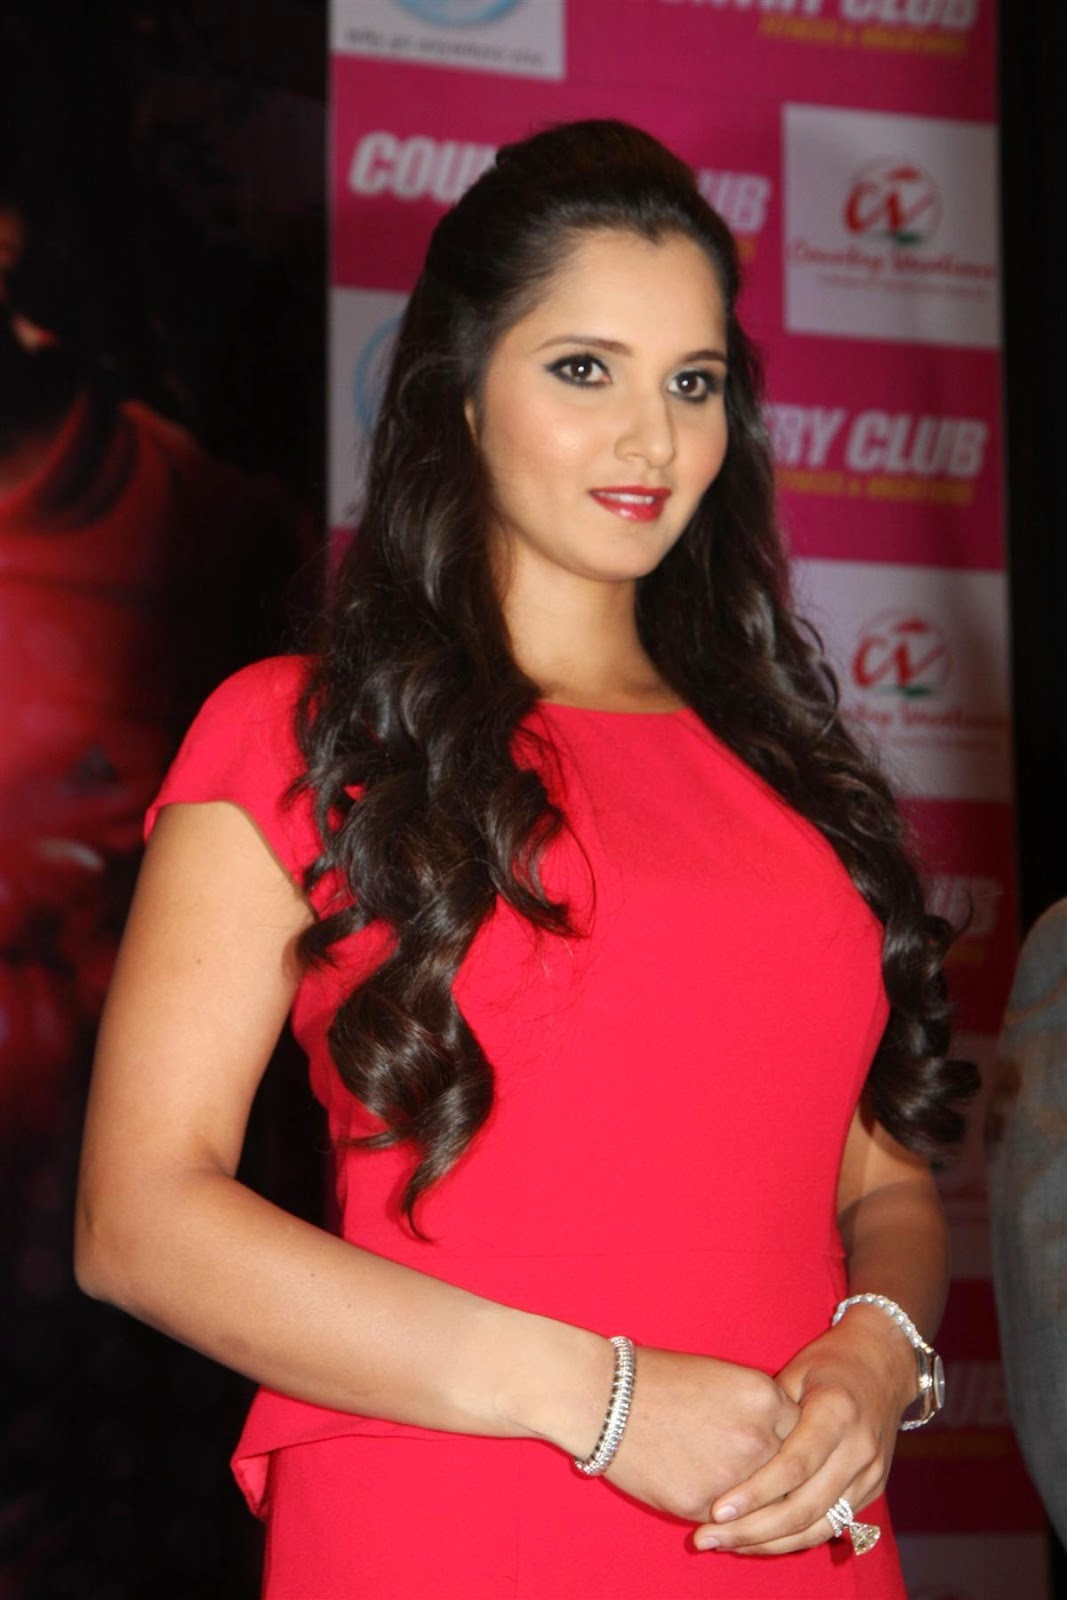 Sania Mirza looking hot in red dress